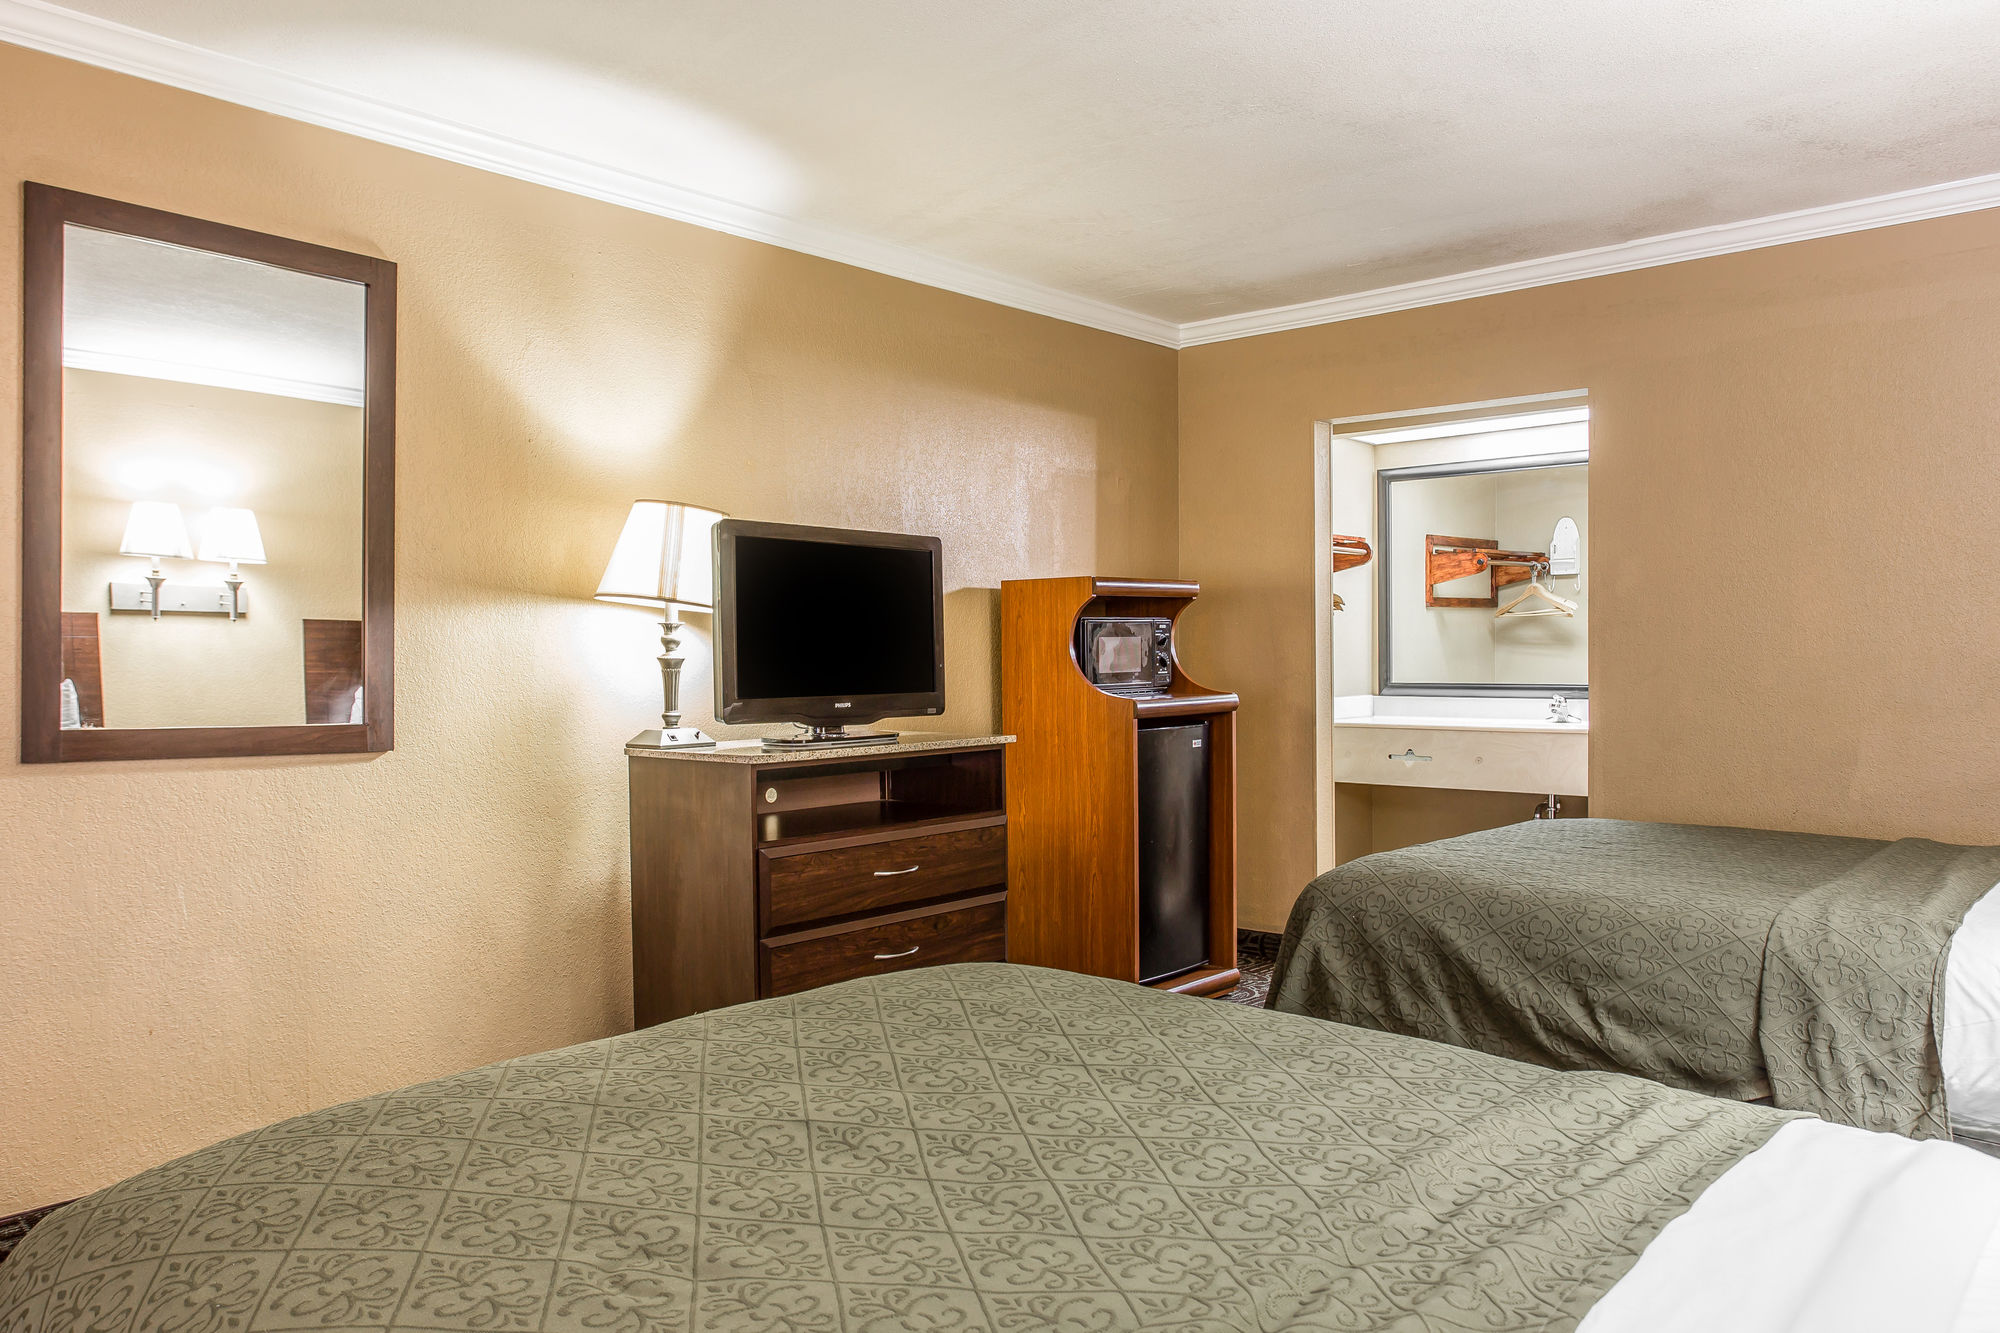 Quality Inn And Suites in Columbia, SC